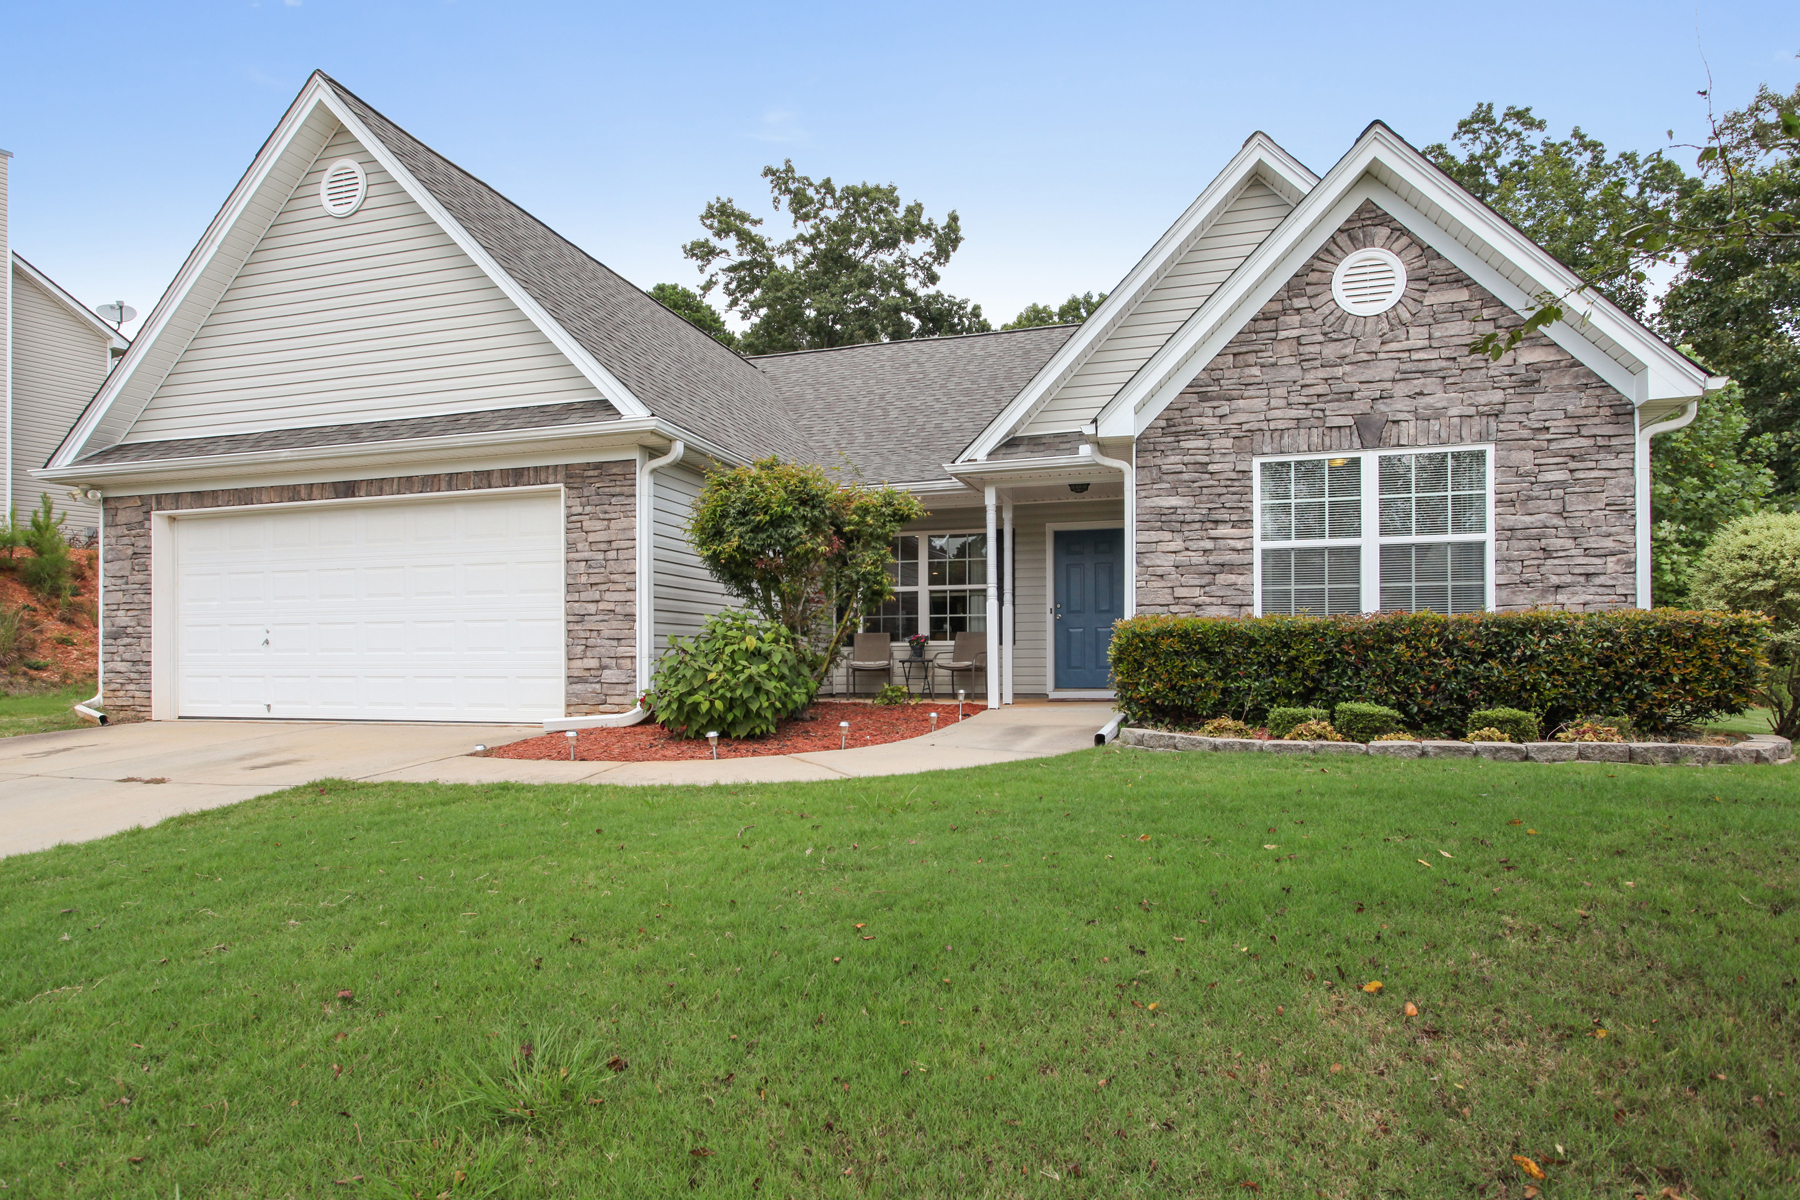 Single Family Home for Sale at Move In Ready Ranch In North Forsyth 9110 Woodland Tree Lane Cumming, Georgia 30028 United States